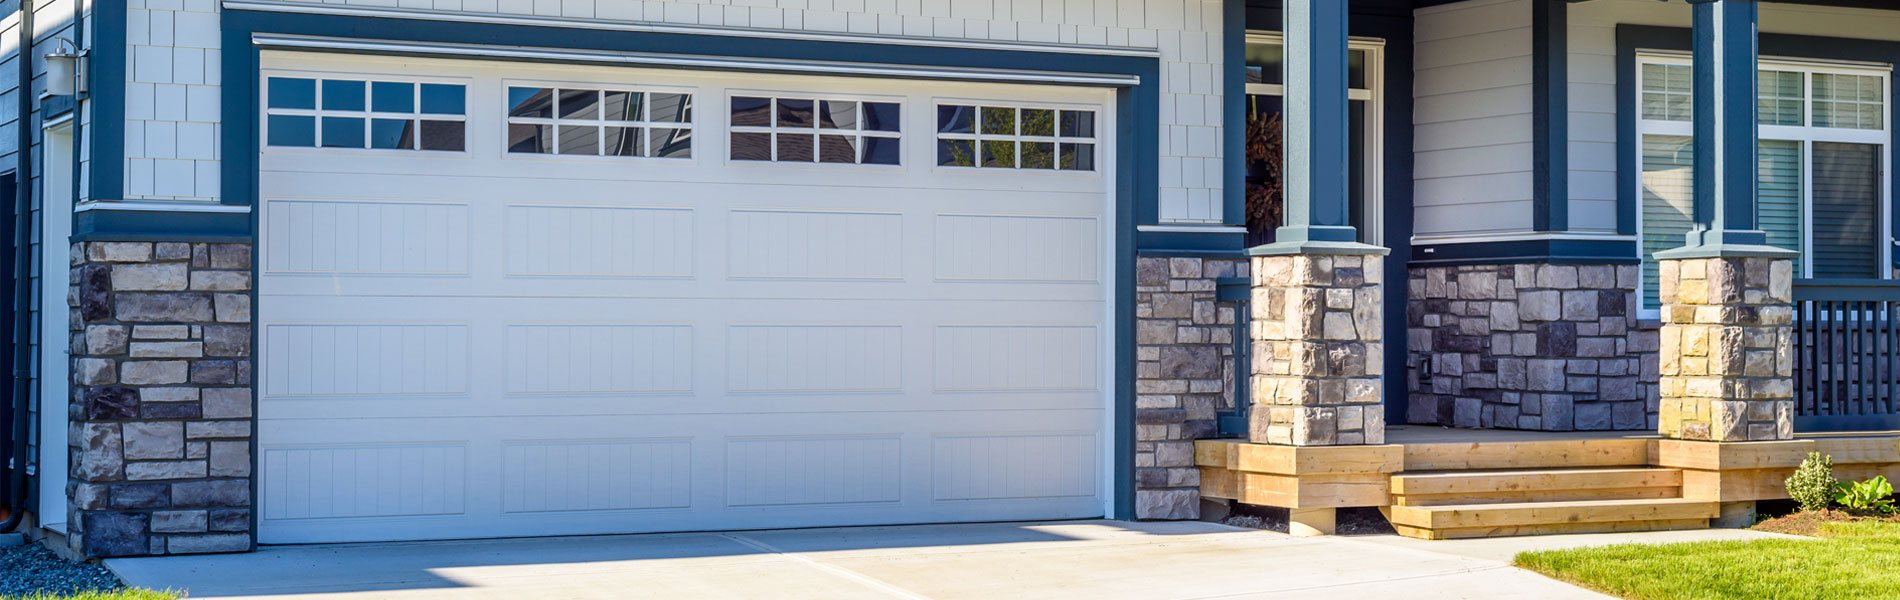 Neighborhood Garage Door Jupiter, FL 561-609-0104